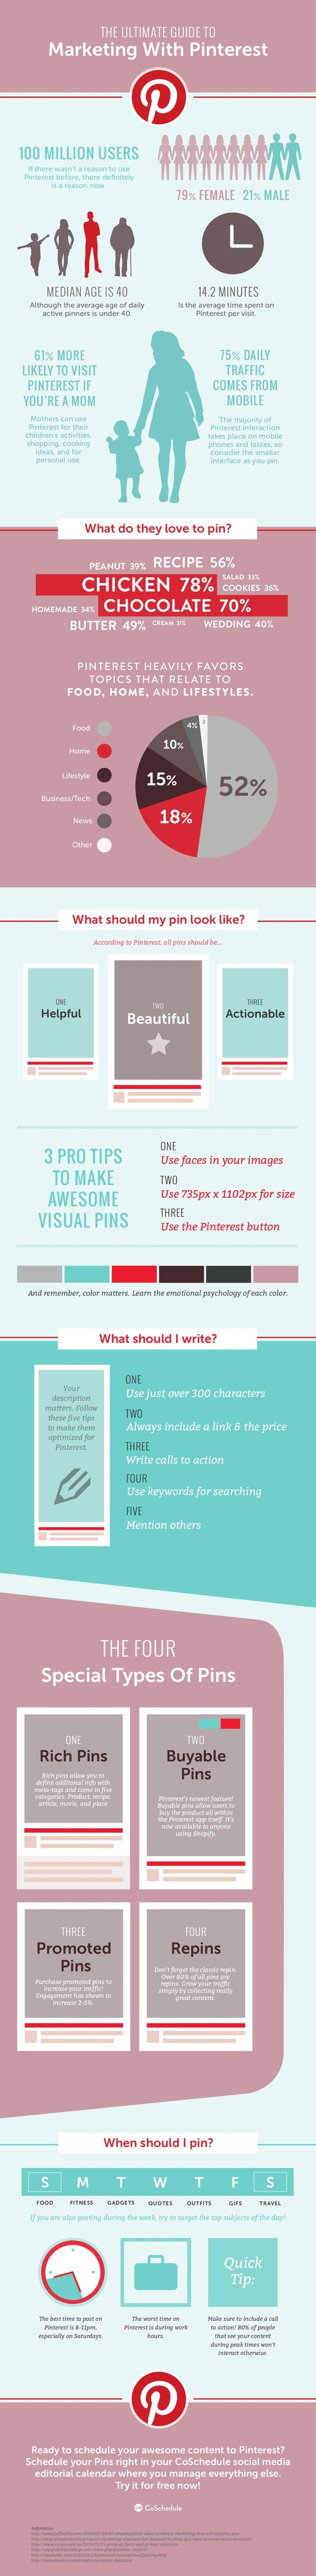 The Ultimate Guide On How To Use Pinterest For Marketing - infographic